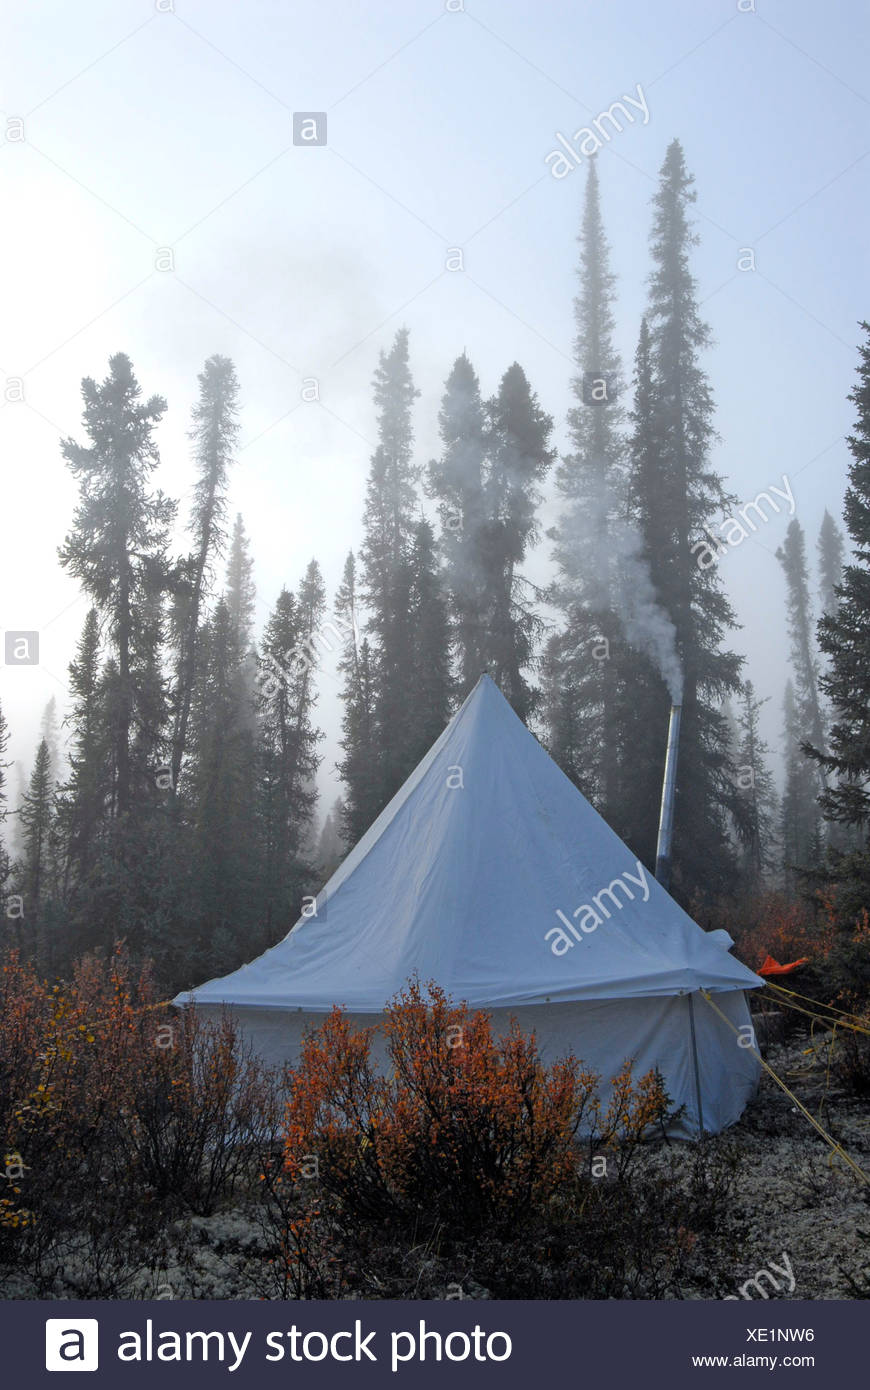 Camping-wall tent set up in middle of woods  Foggy morning